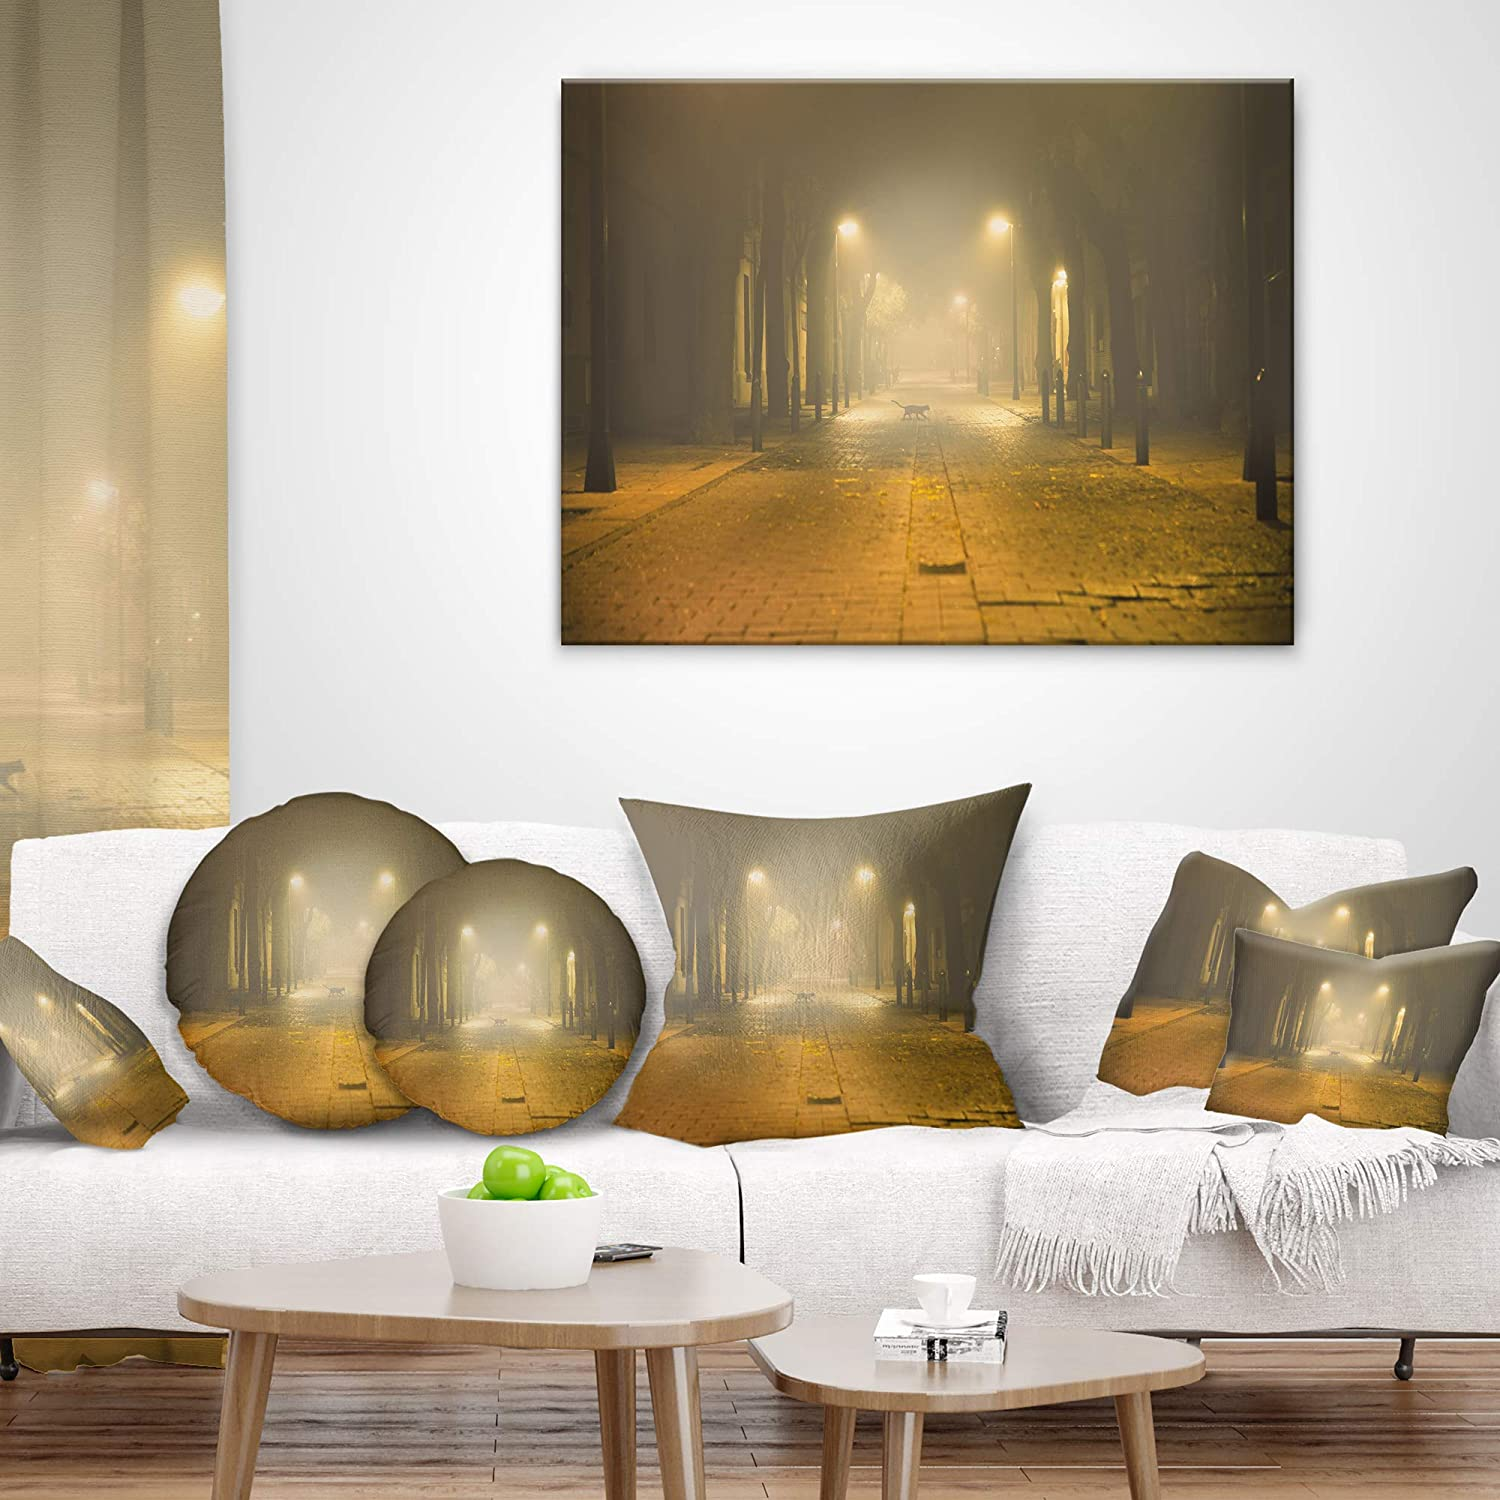 Designart Cu9406 16 16 C Urban Street At Night Landscape Photo Round Cushion Cover For Living